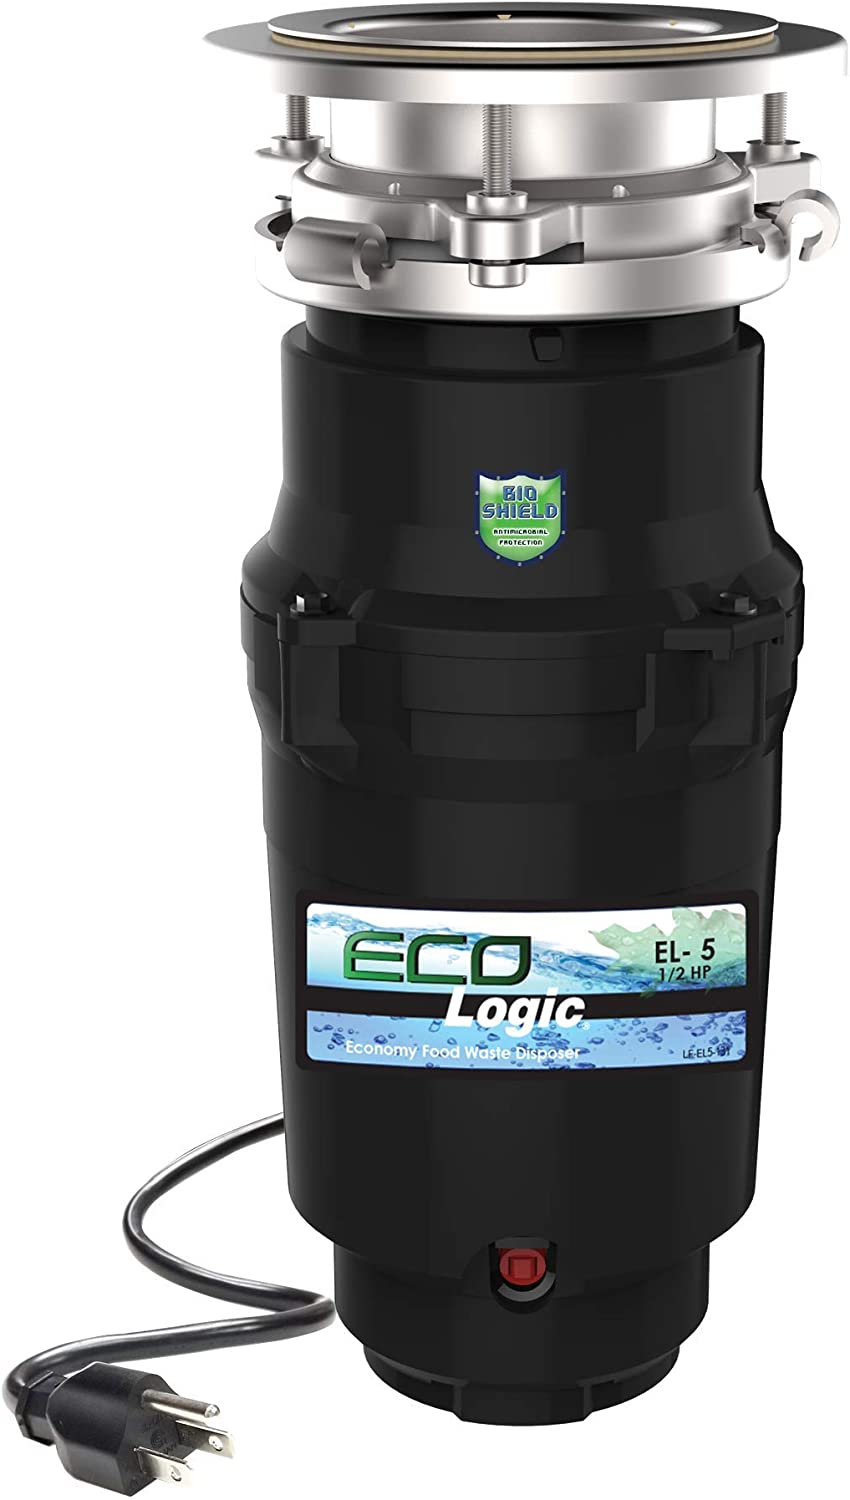 Eco Logic 10-US-EL-5-3B 1/2 Horsepower Garbage Removable Splash Guard Attached Power Cord and Standard 3-Bolt Mounting System, Continuous Feed Disposer, Black